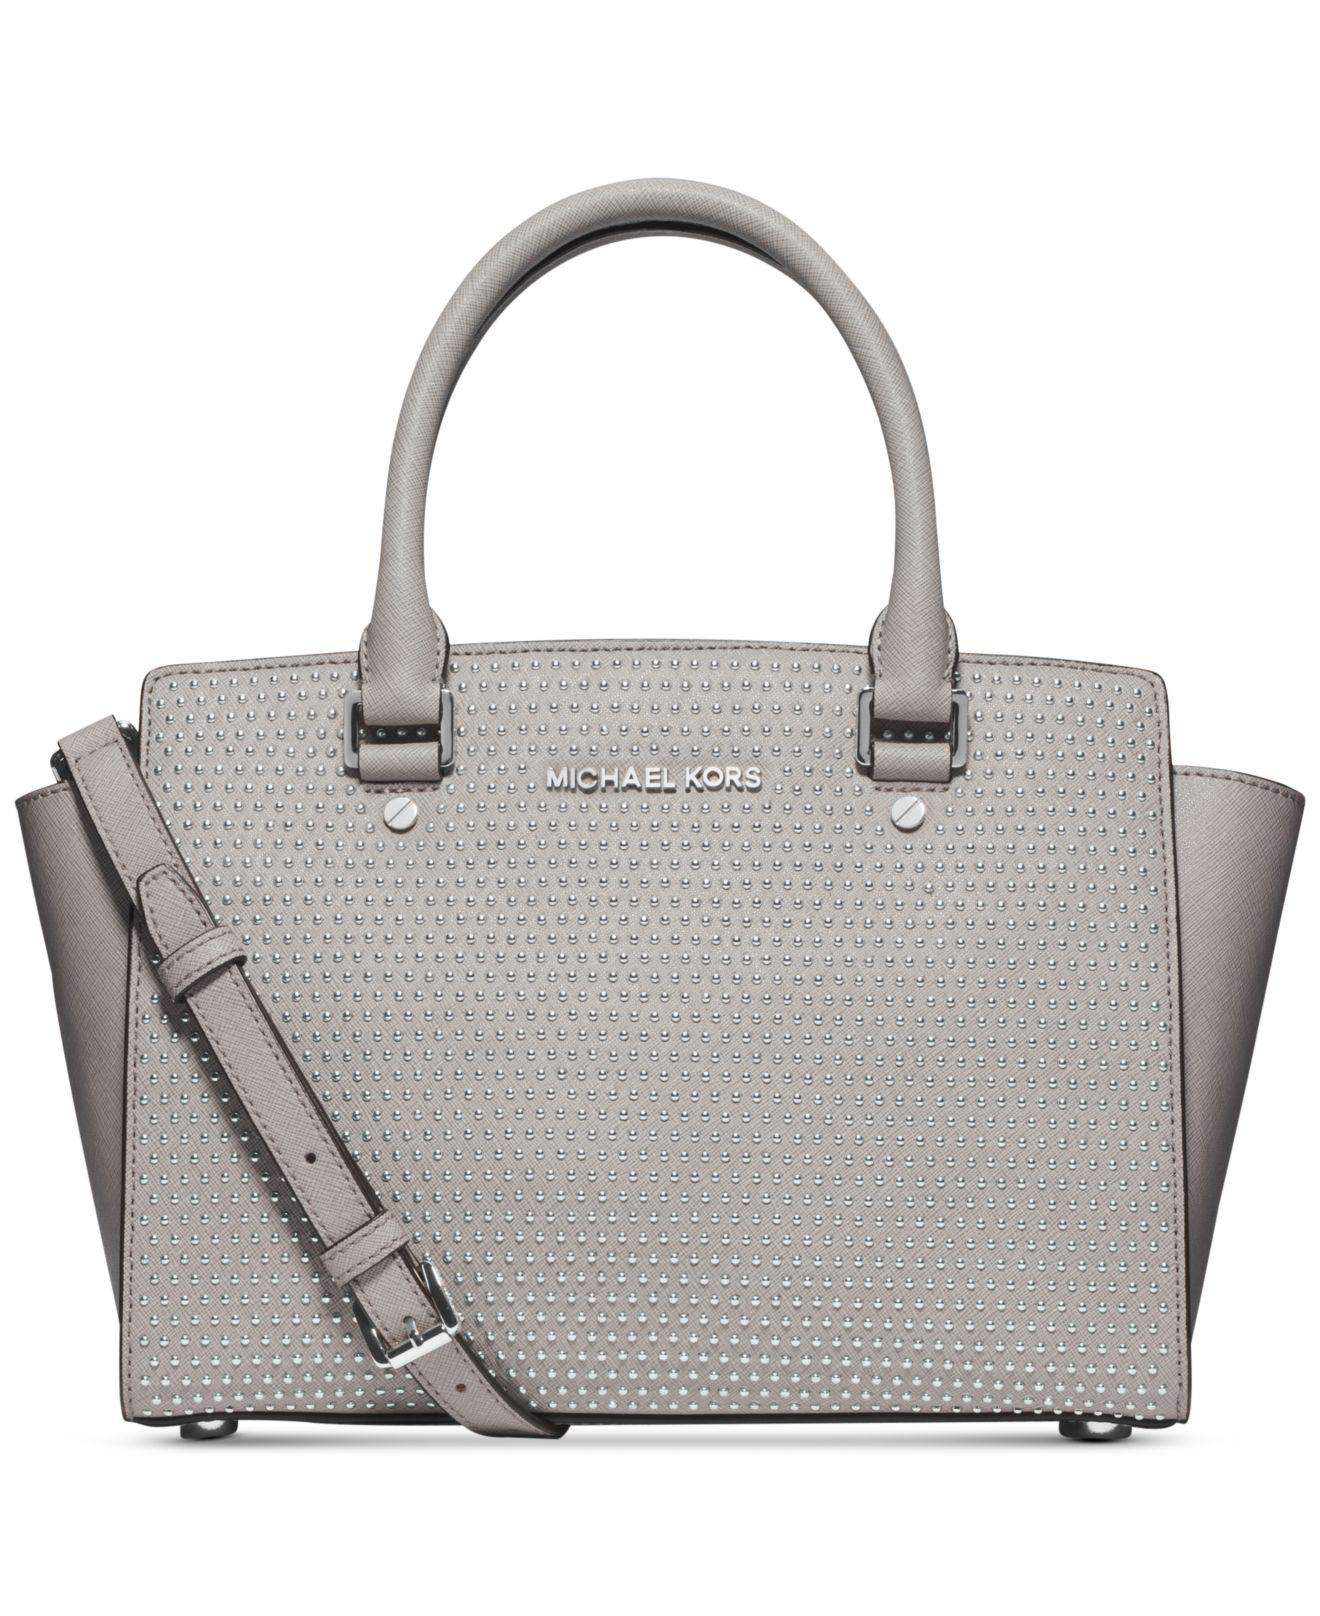 michael kors michael microstud selma medium top zip satchel in gray pearl grey silver lyst. Black Bedroom Furniture Sets. Home Design Ideas